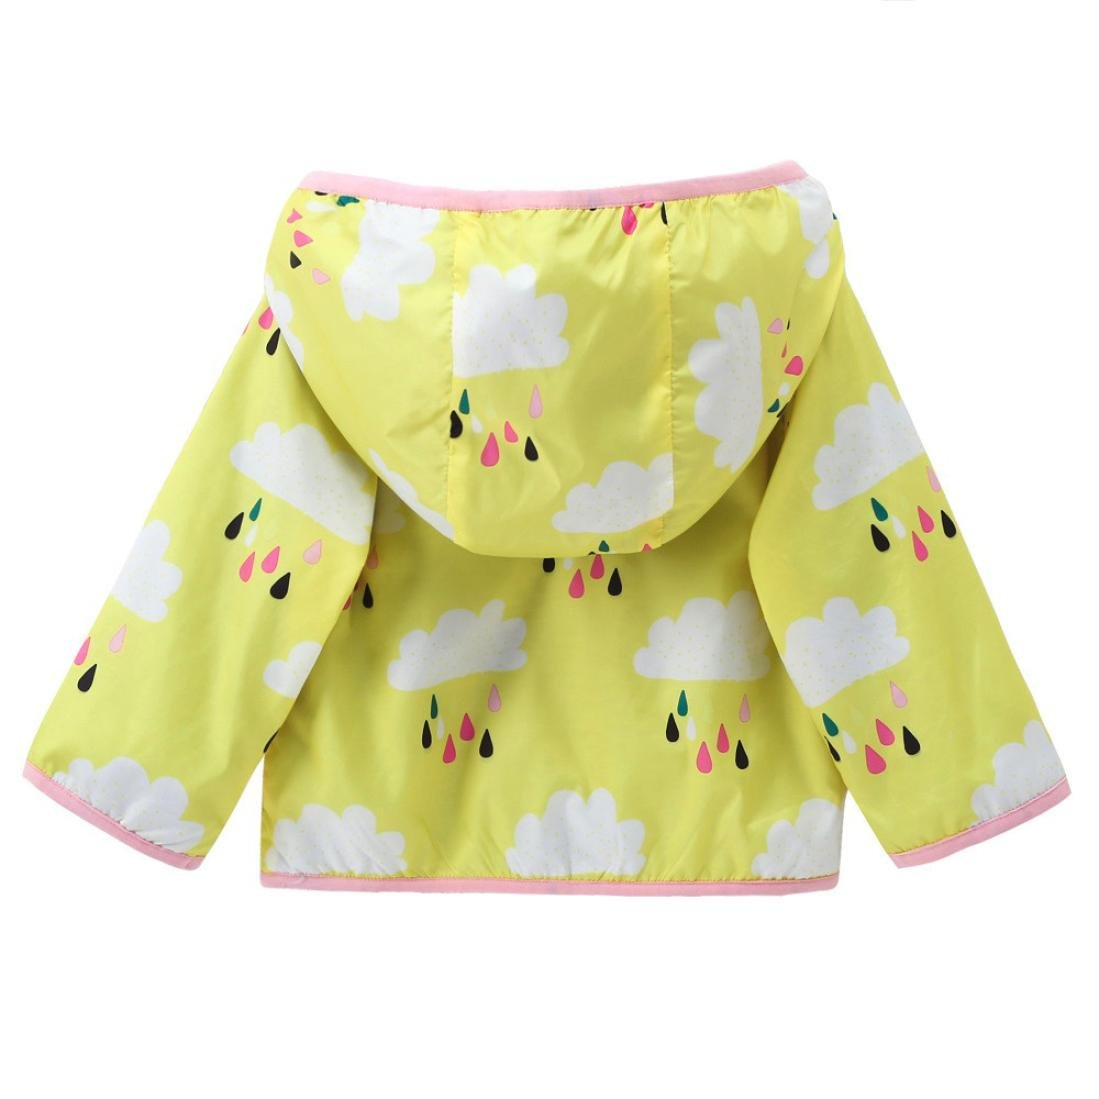 Voberry Toddler Kids Boys Girls Clothes Coat Sunscreen Coat Hooded Printing Spring Autumn Coat Tops Clothes Green